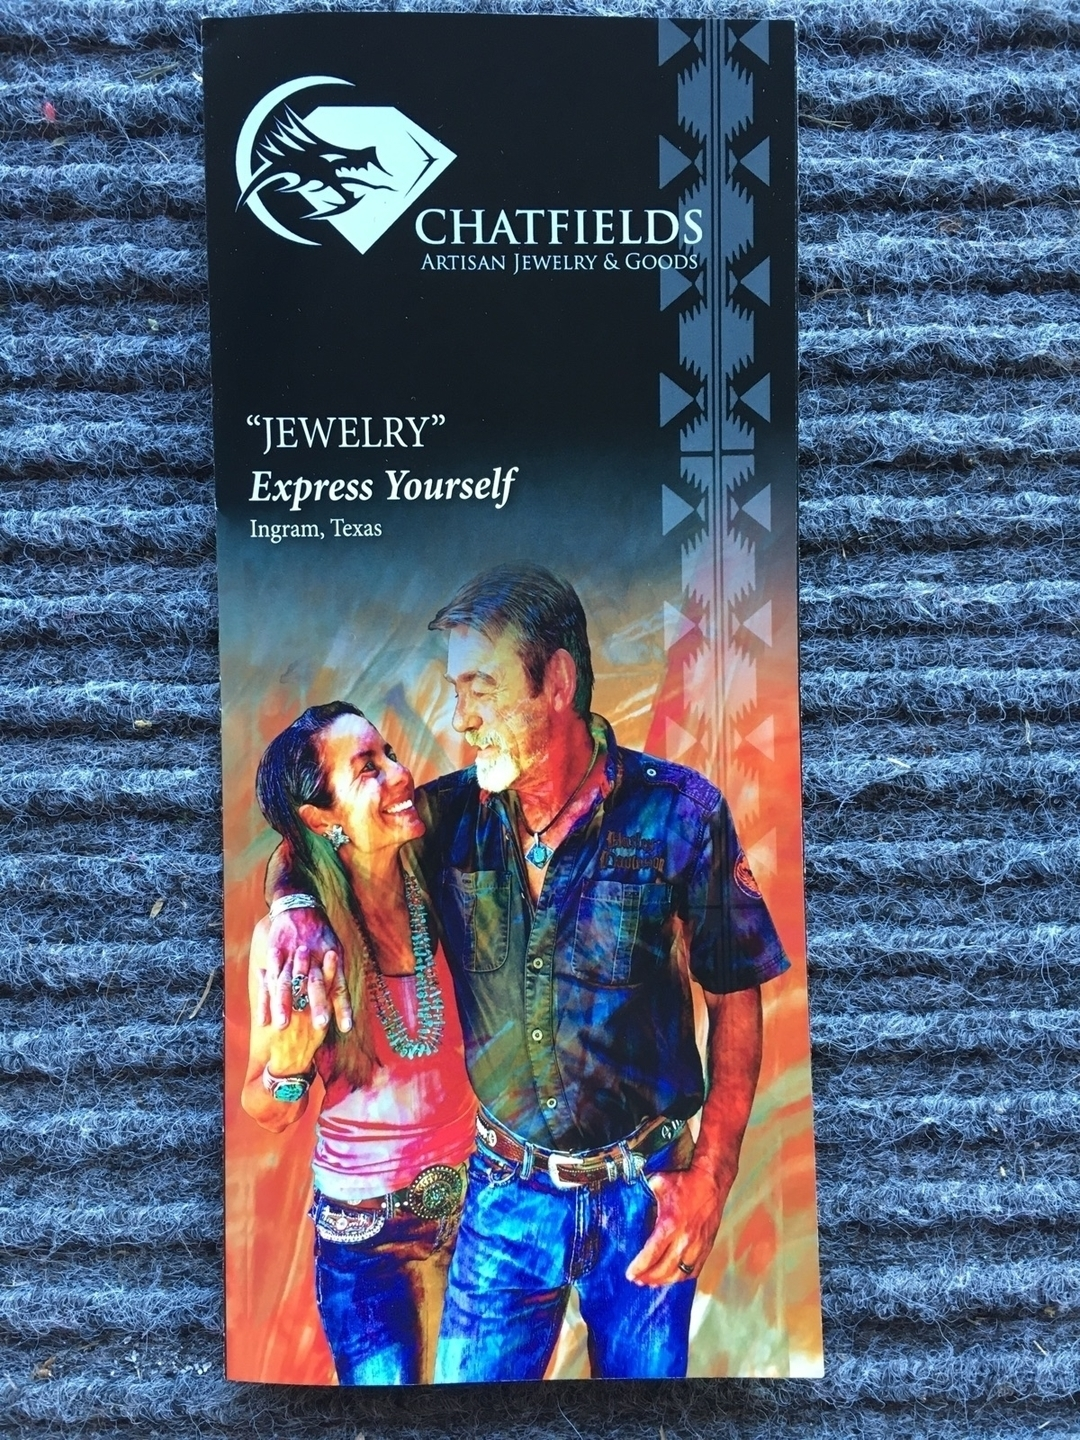 @chatfields Cover Image